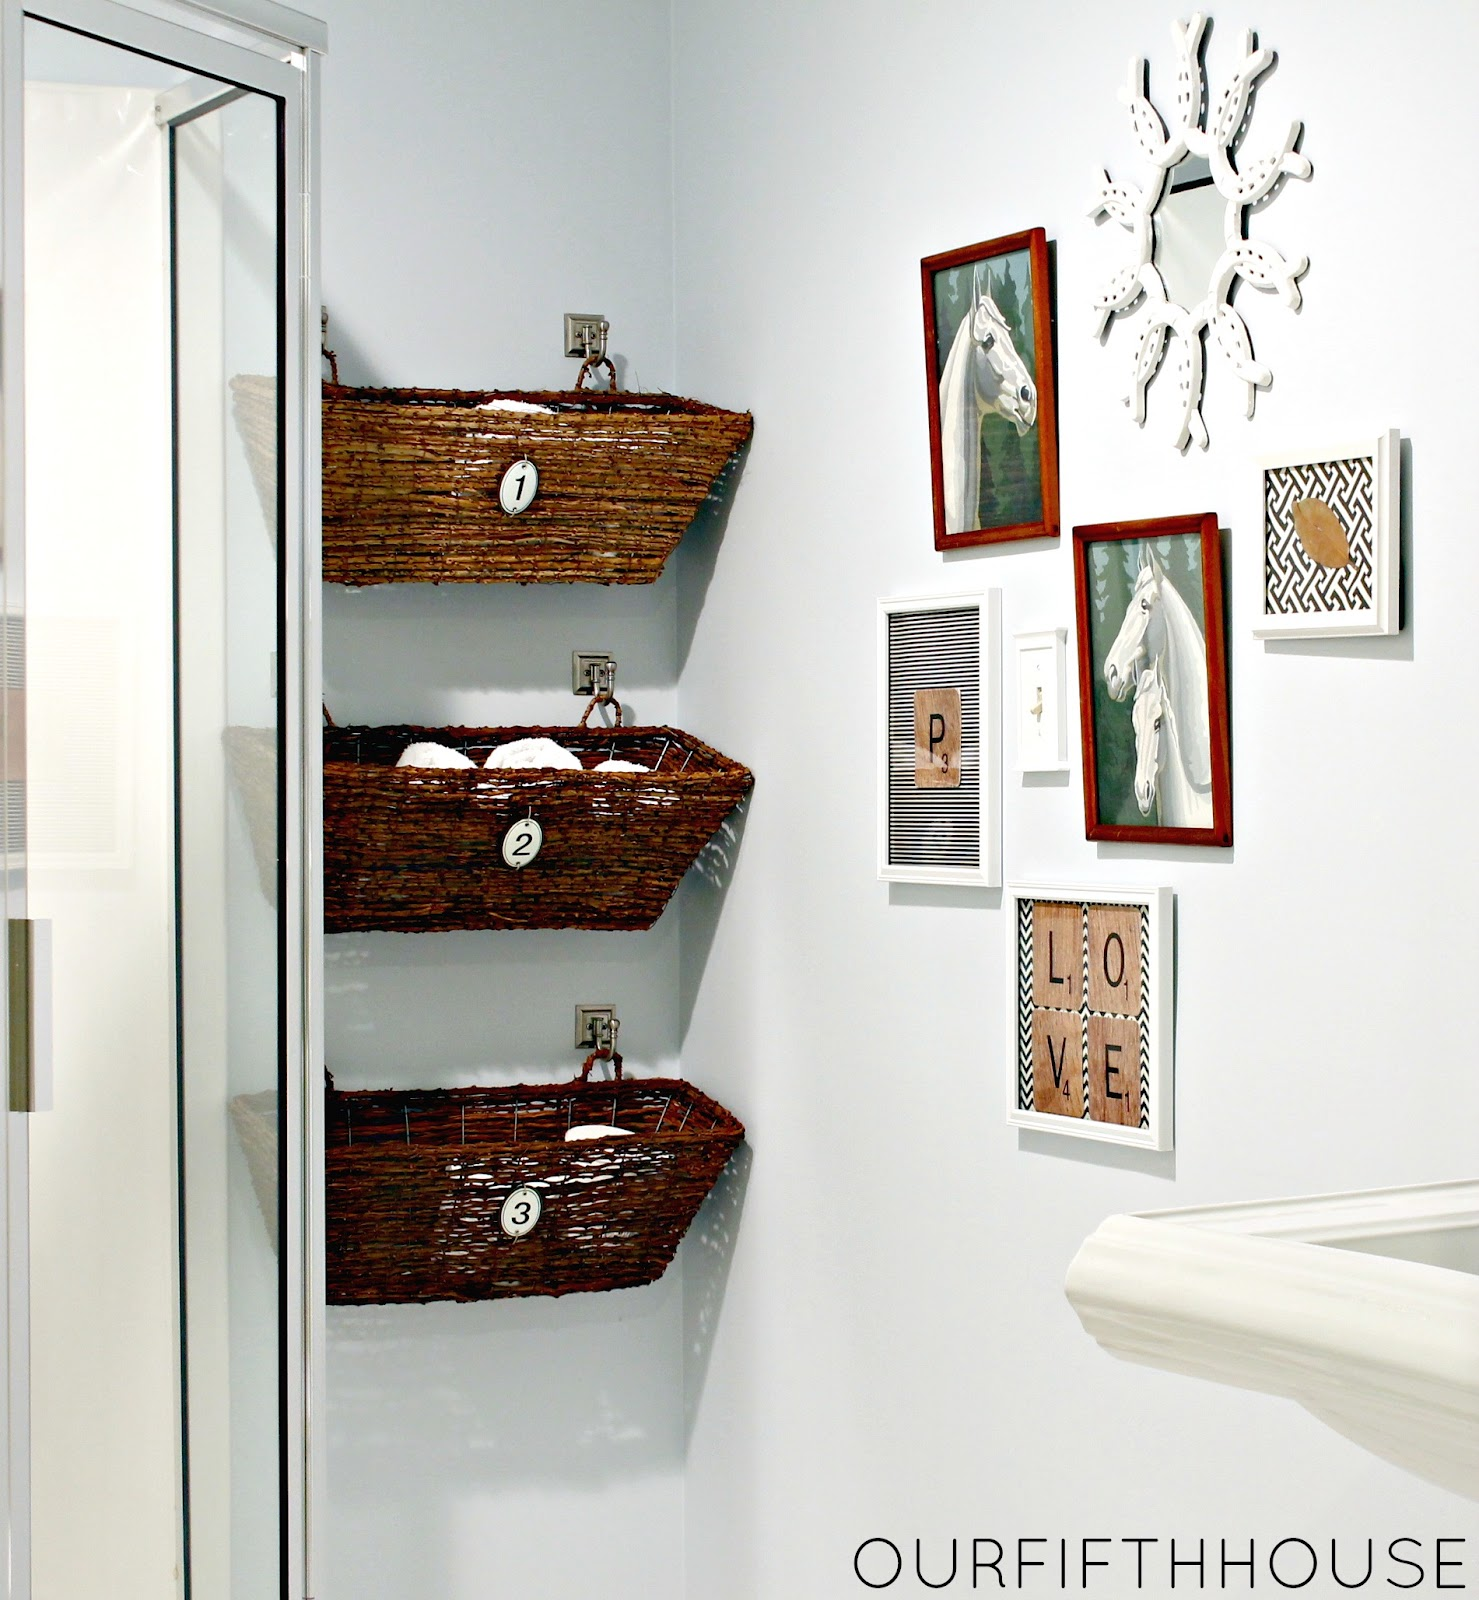 Bathroom wall storage ideas - 12 Small Bathroom Storage Ideas Wall Storage Solutons And Shelves For Bathrooms